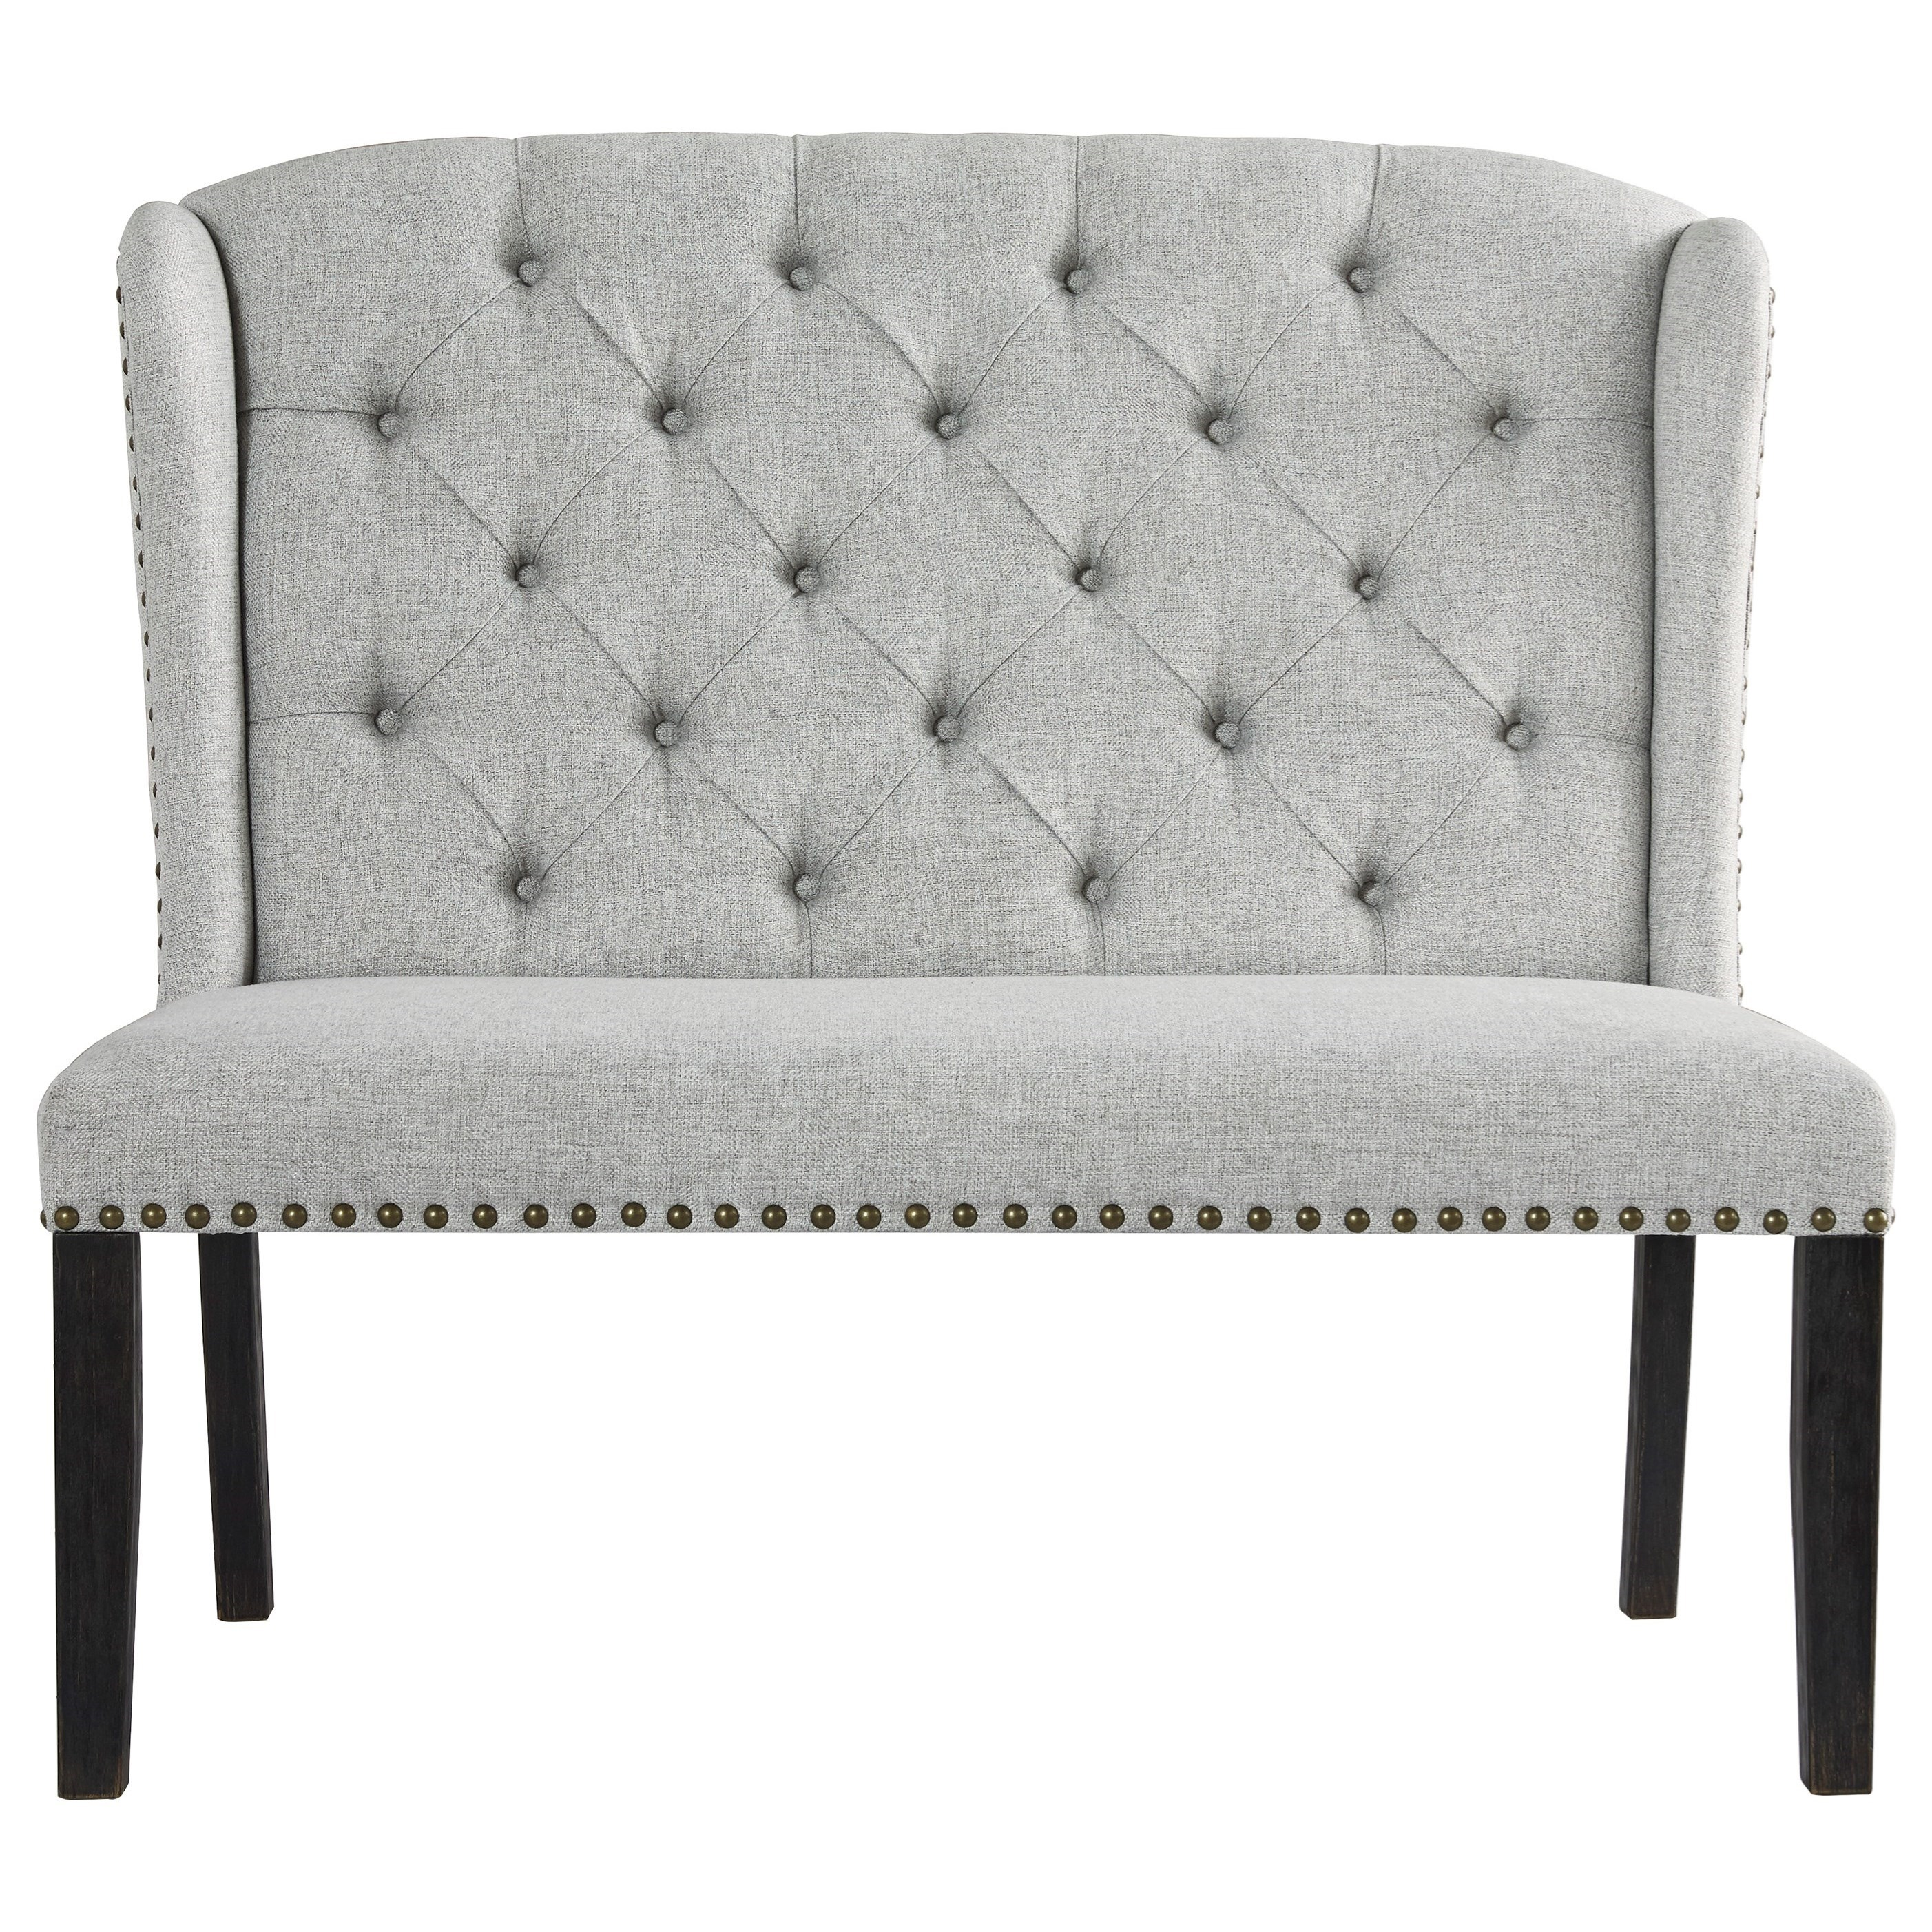 Jeanette Upholstered Bench by Ashley Furniture at EFO Furniture Outlet